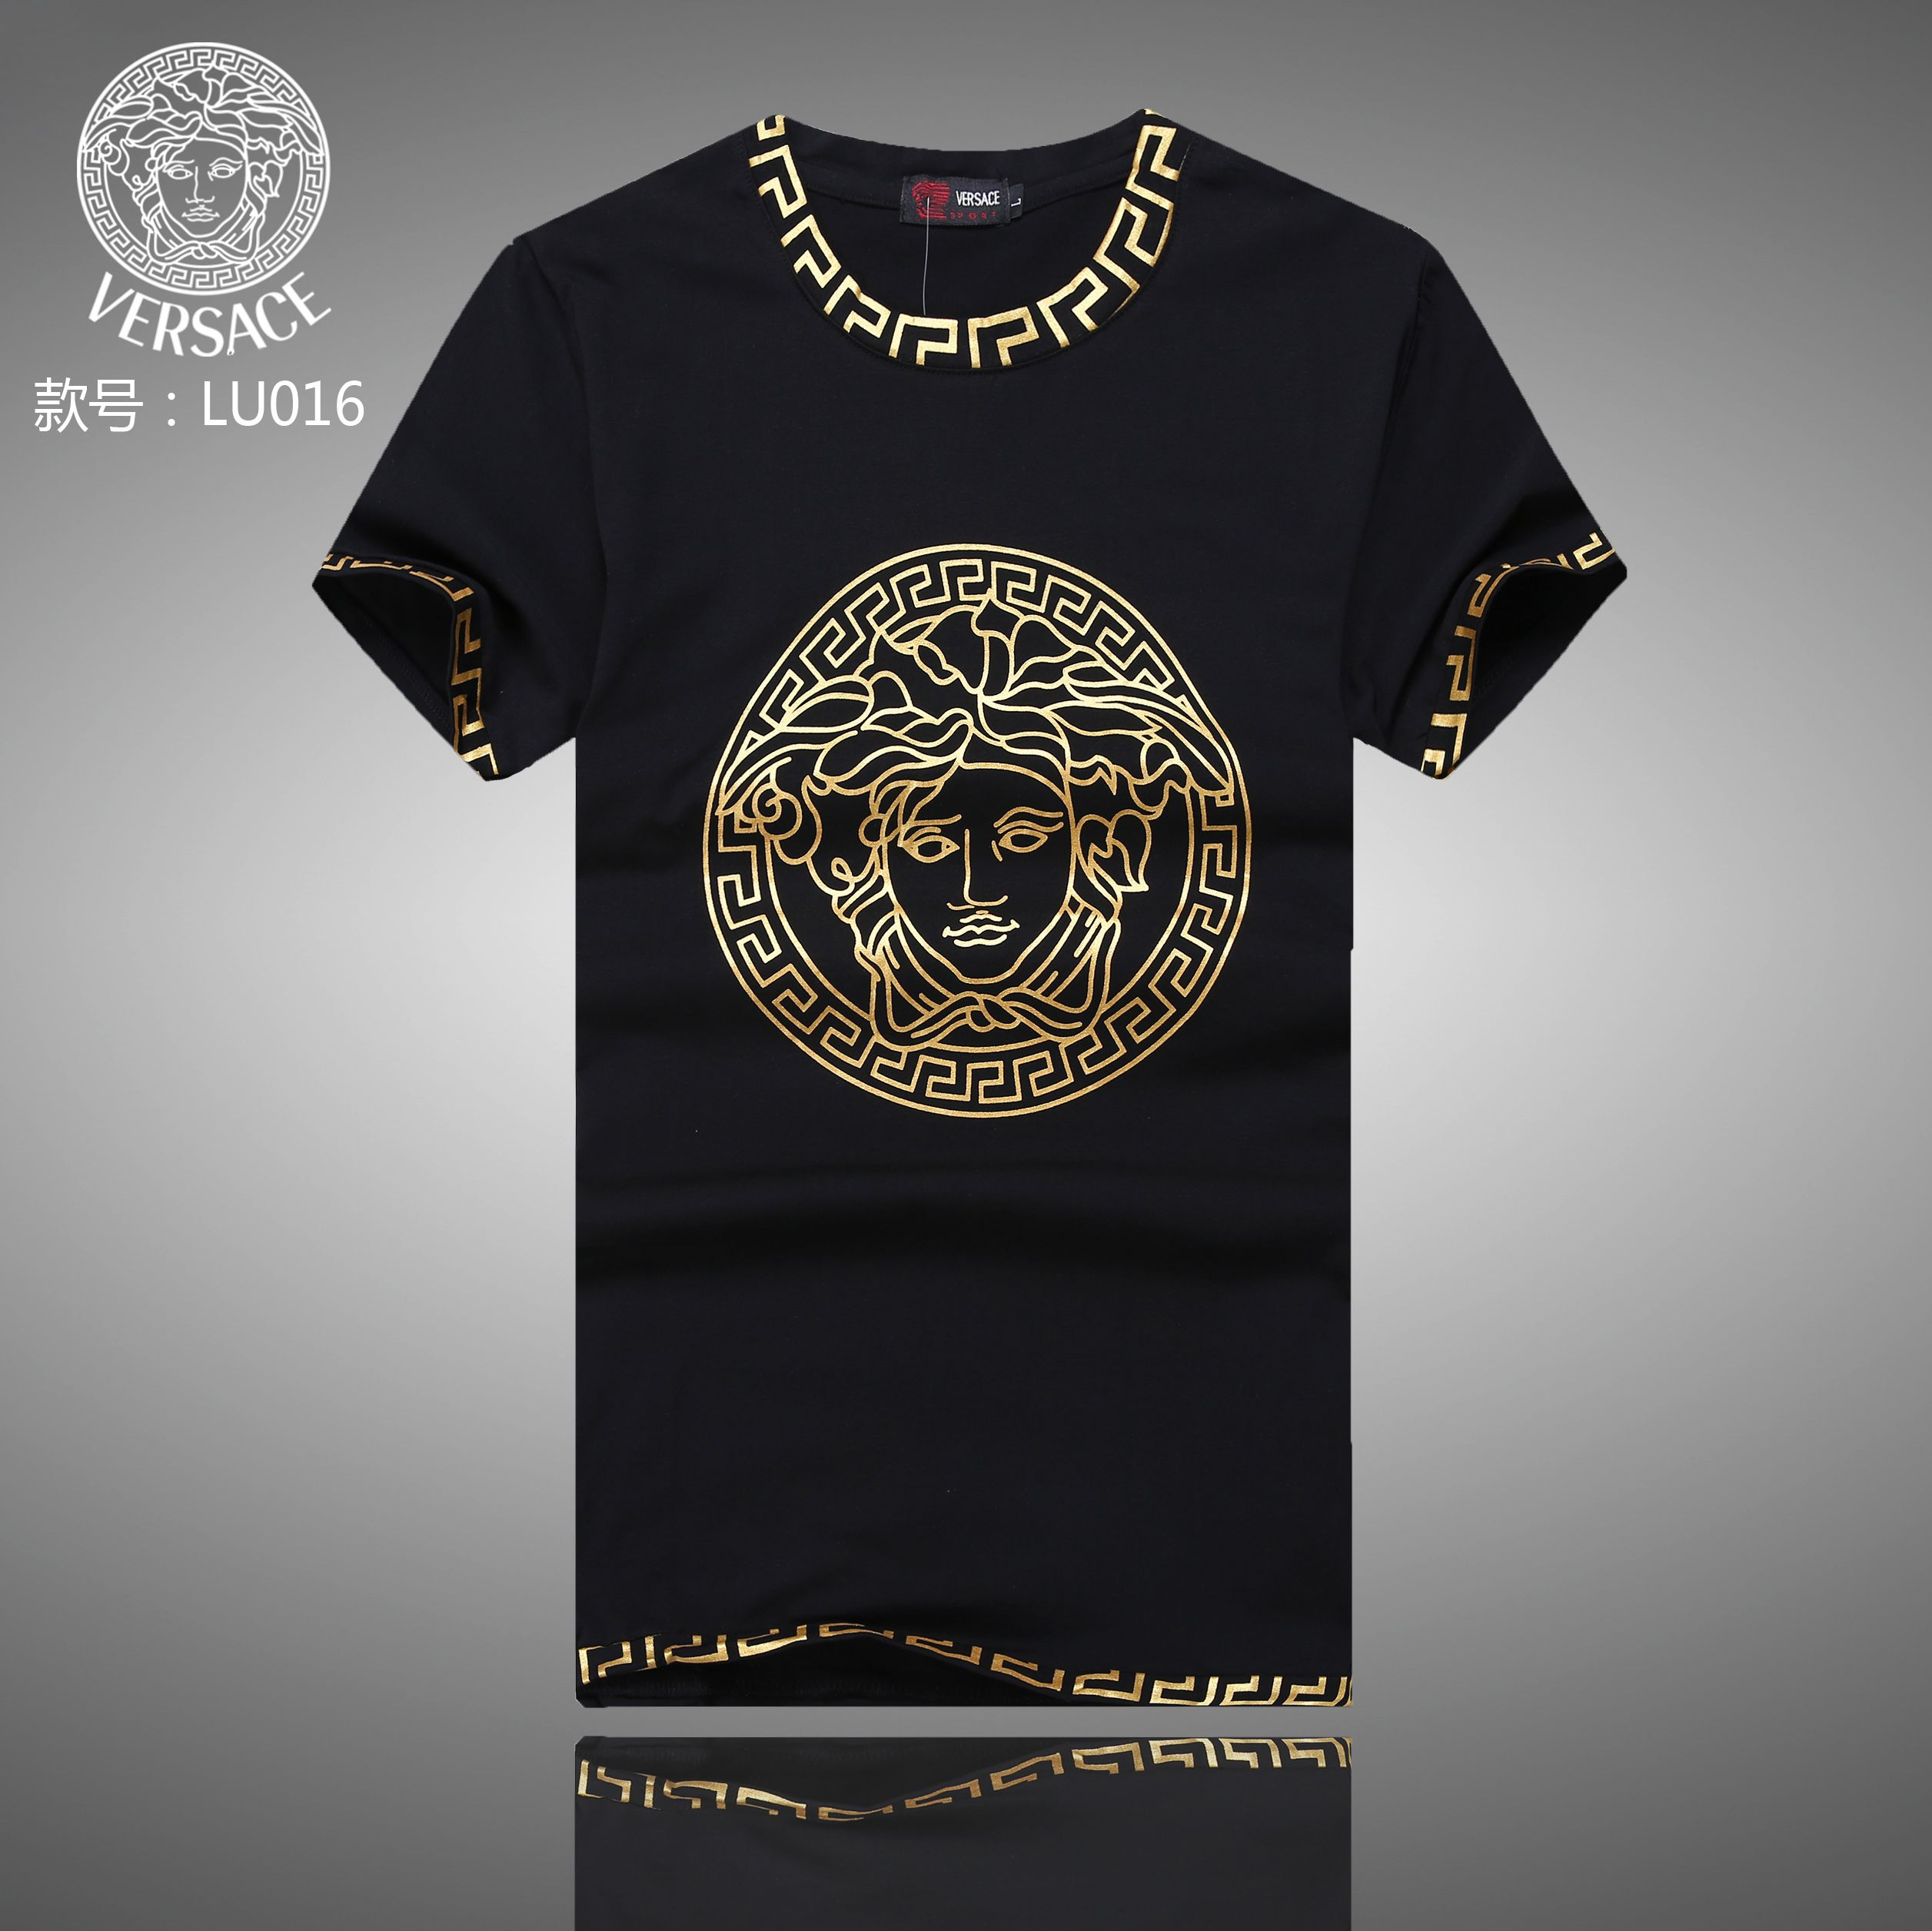 Replica Versace T-Shirts for men #256027 for cheap,$21 USD On sale ...